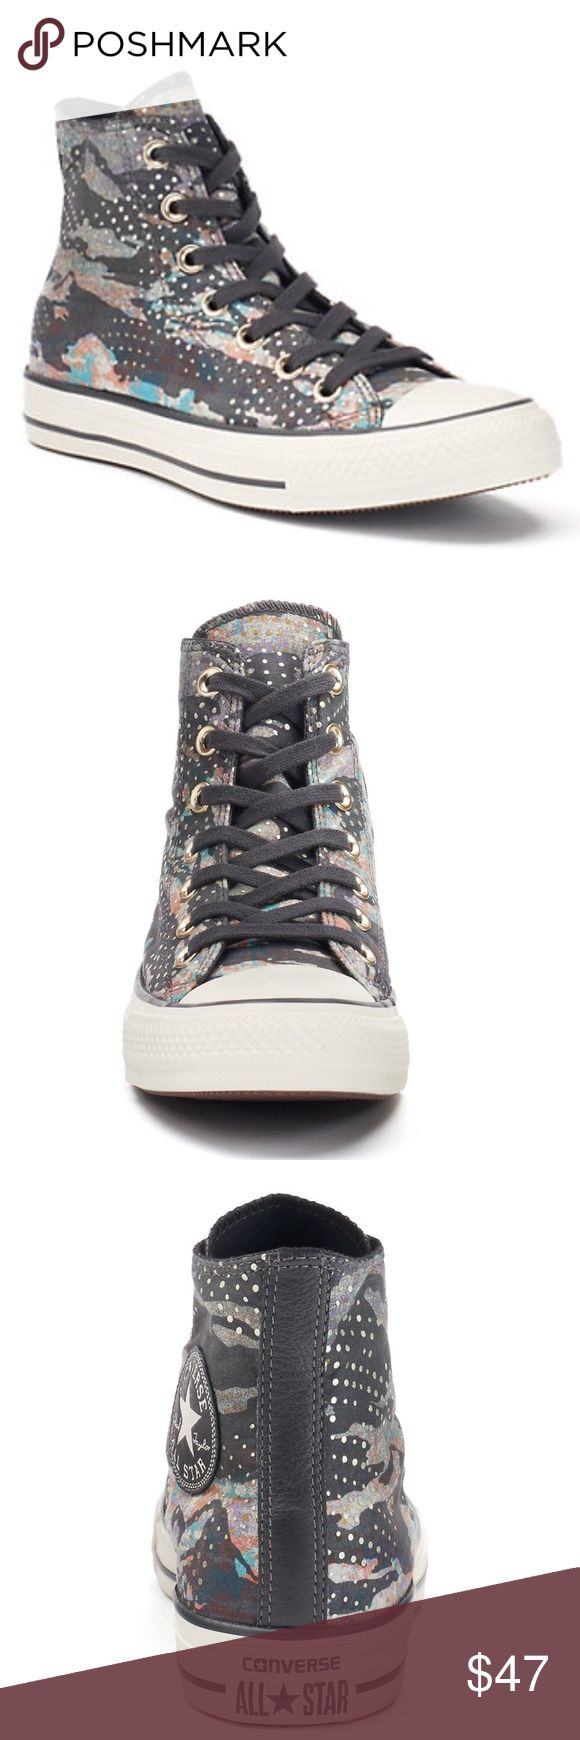 Big Kid Converse Mountain Landscape Shoes Brand New In Original Box. These Mountain Landscape sneakers from Converse highlight a trendy high top style with an eye-catching paint splatter print. Converse Chuck Taylor All Star Mountain Landscape High-Top Sneakers SHOE FEATURES High-top Metallic dots Traction sole SHOE CONSTRUCTION Canvas upper / lining Rubber outsole SHOE DETAILS Round toe Lace-up closure Padded footbed   J15 Converse Shoes Sneakers